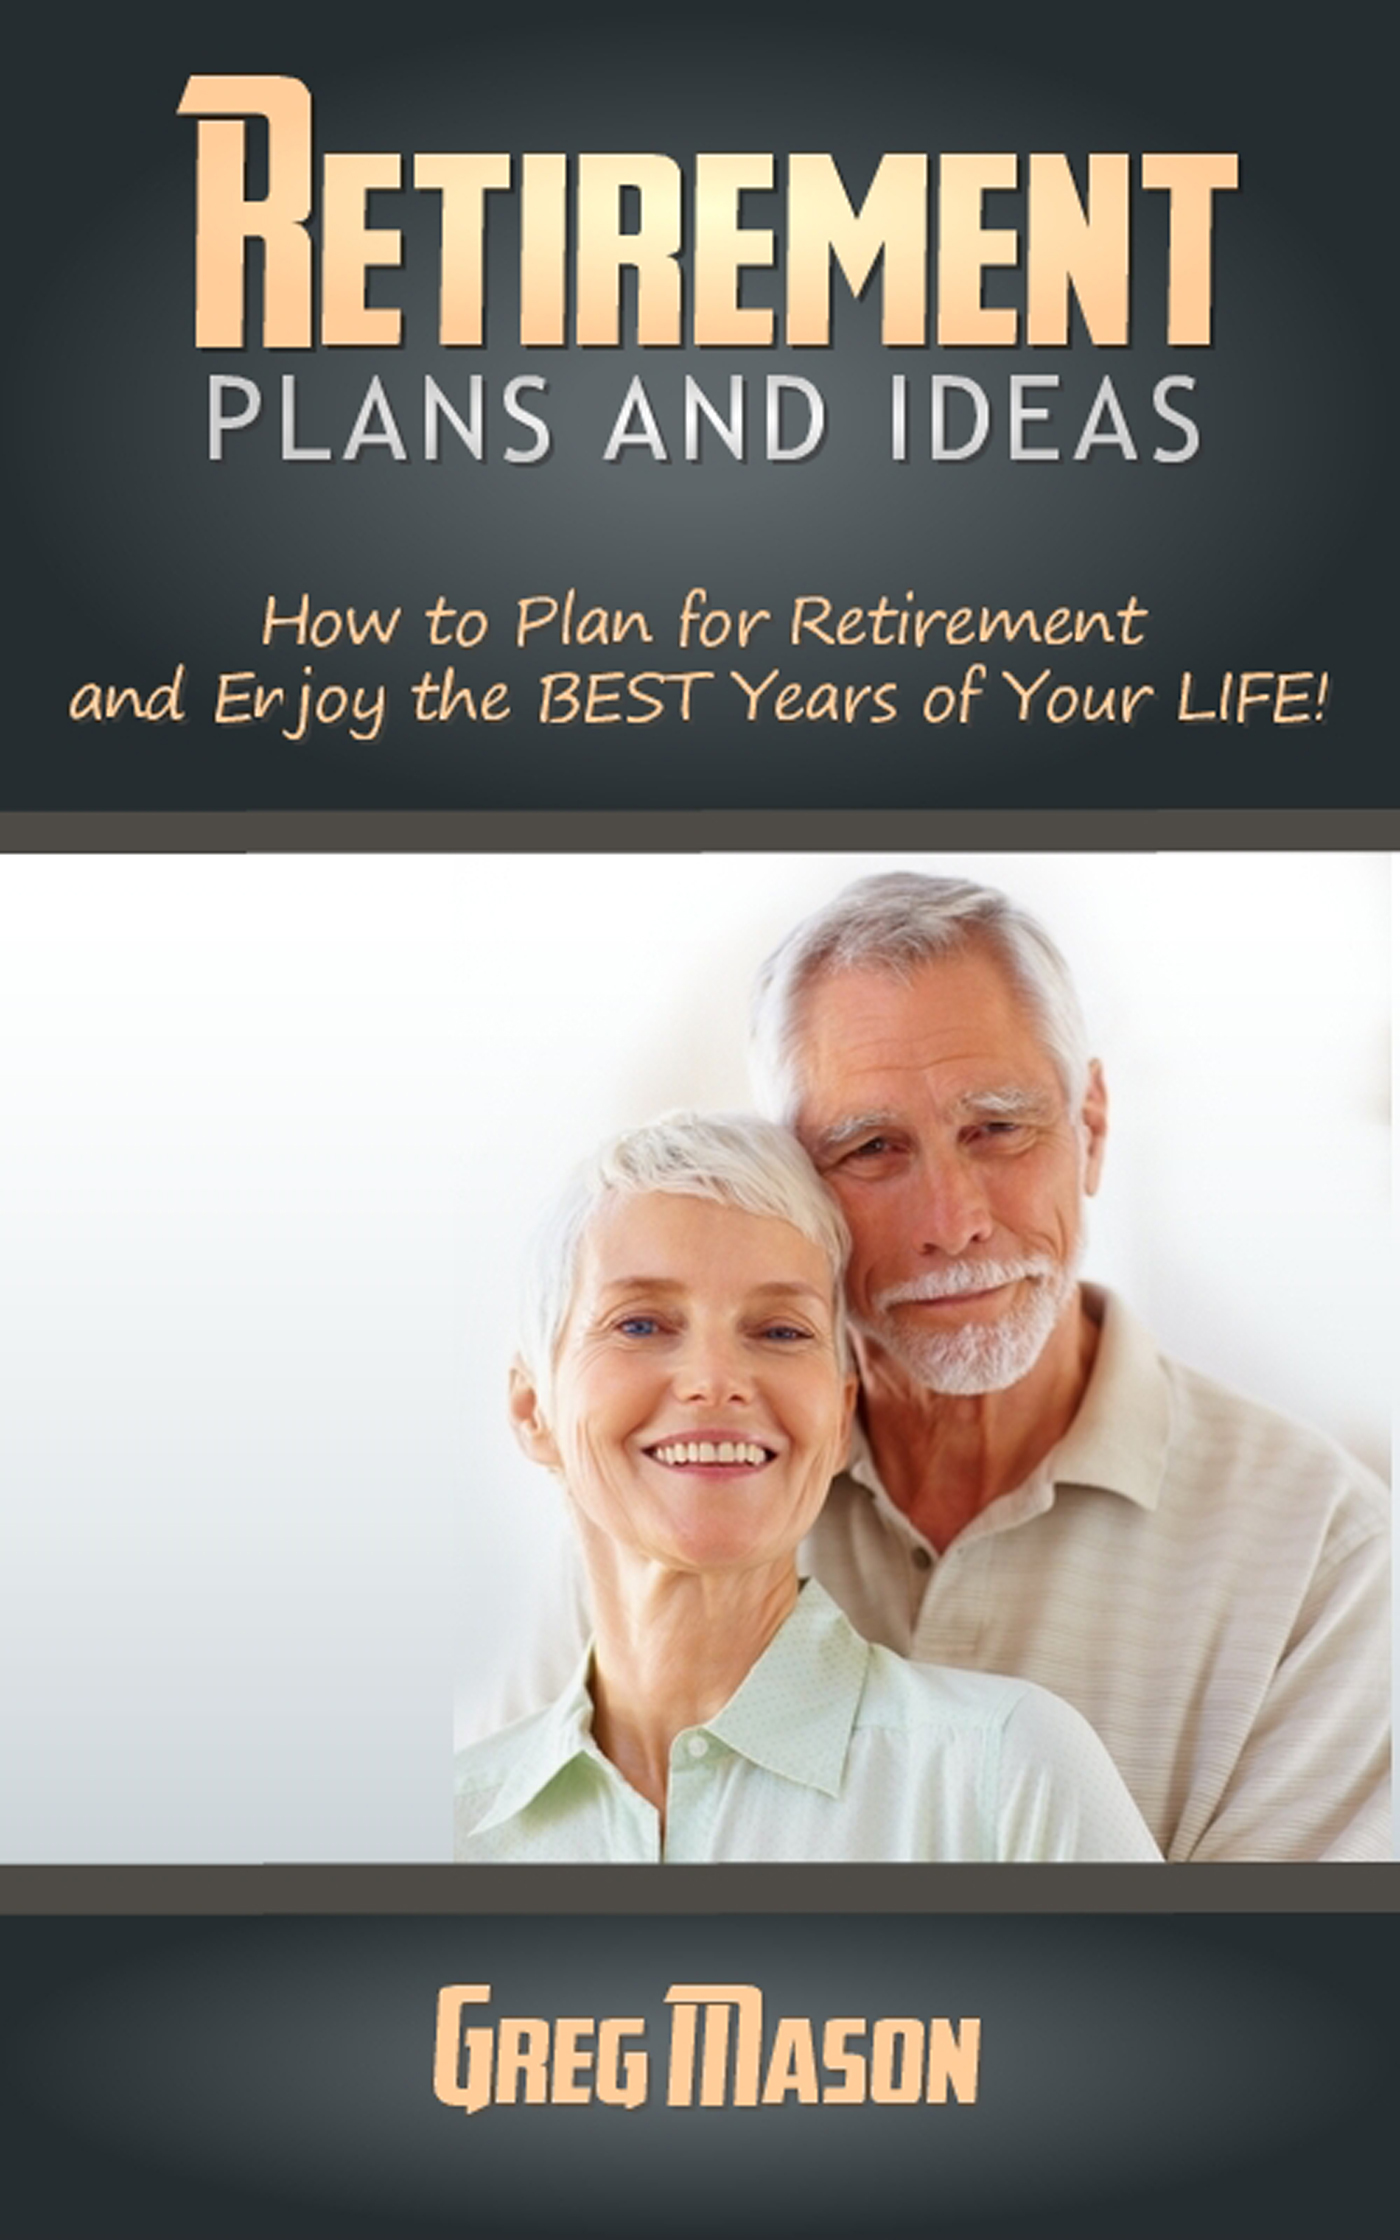 Retirement Plans and Ideas: How to Plan for Retirement and Enjoy the BEST Years of Your Life!